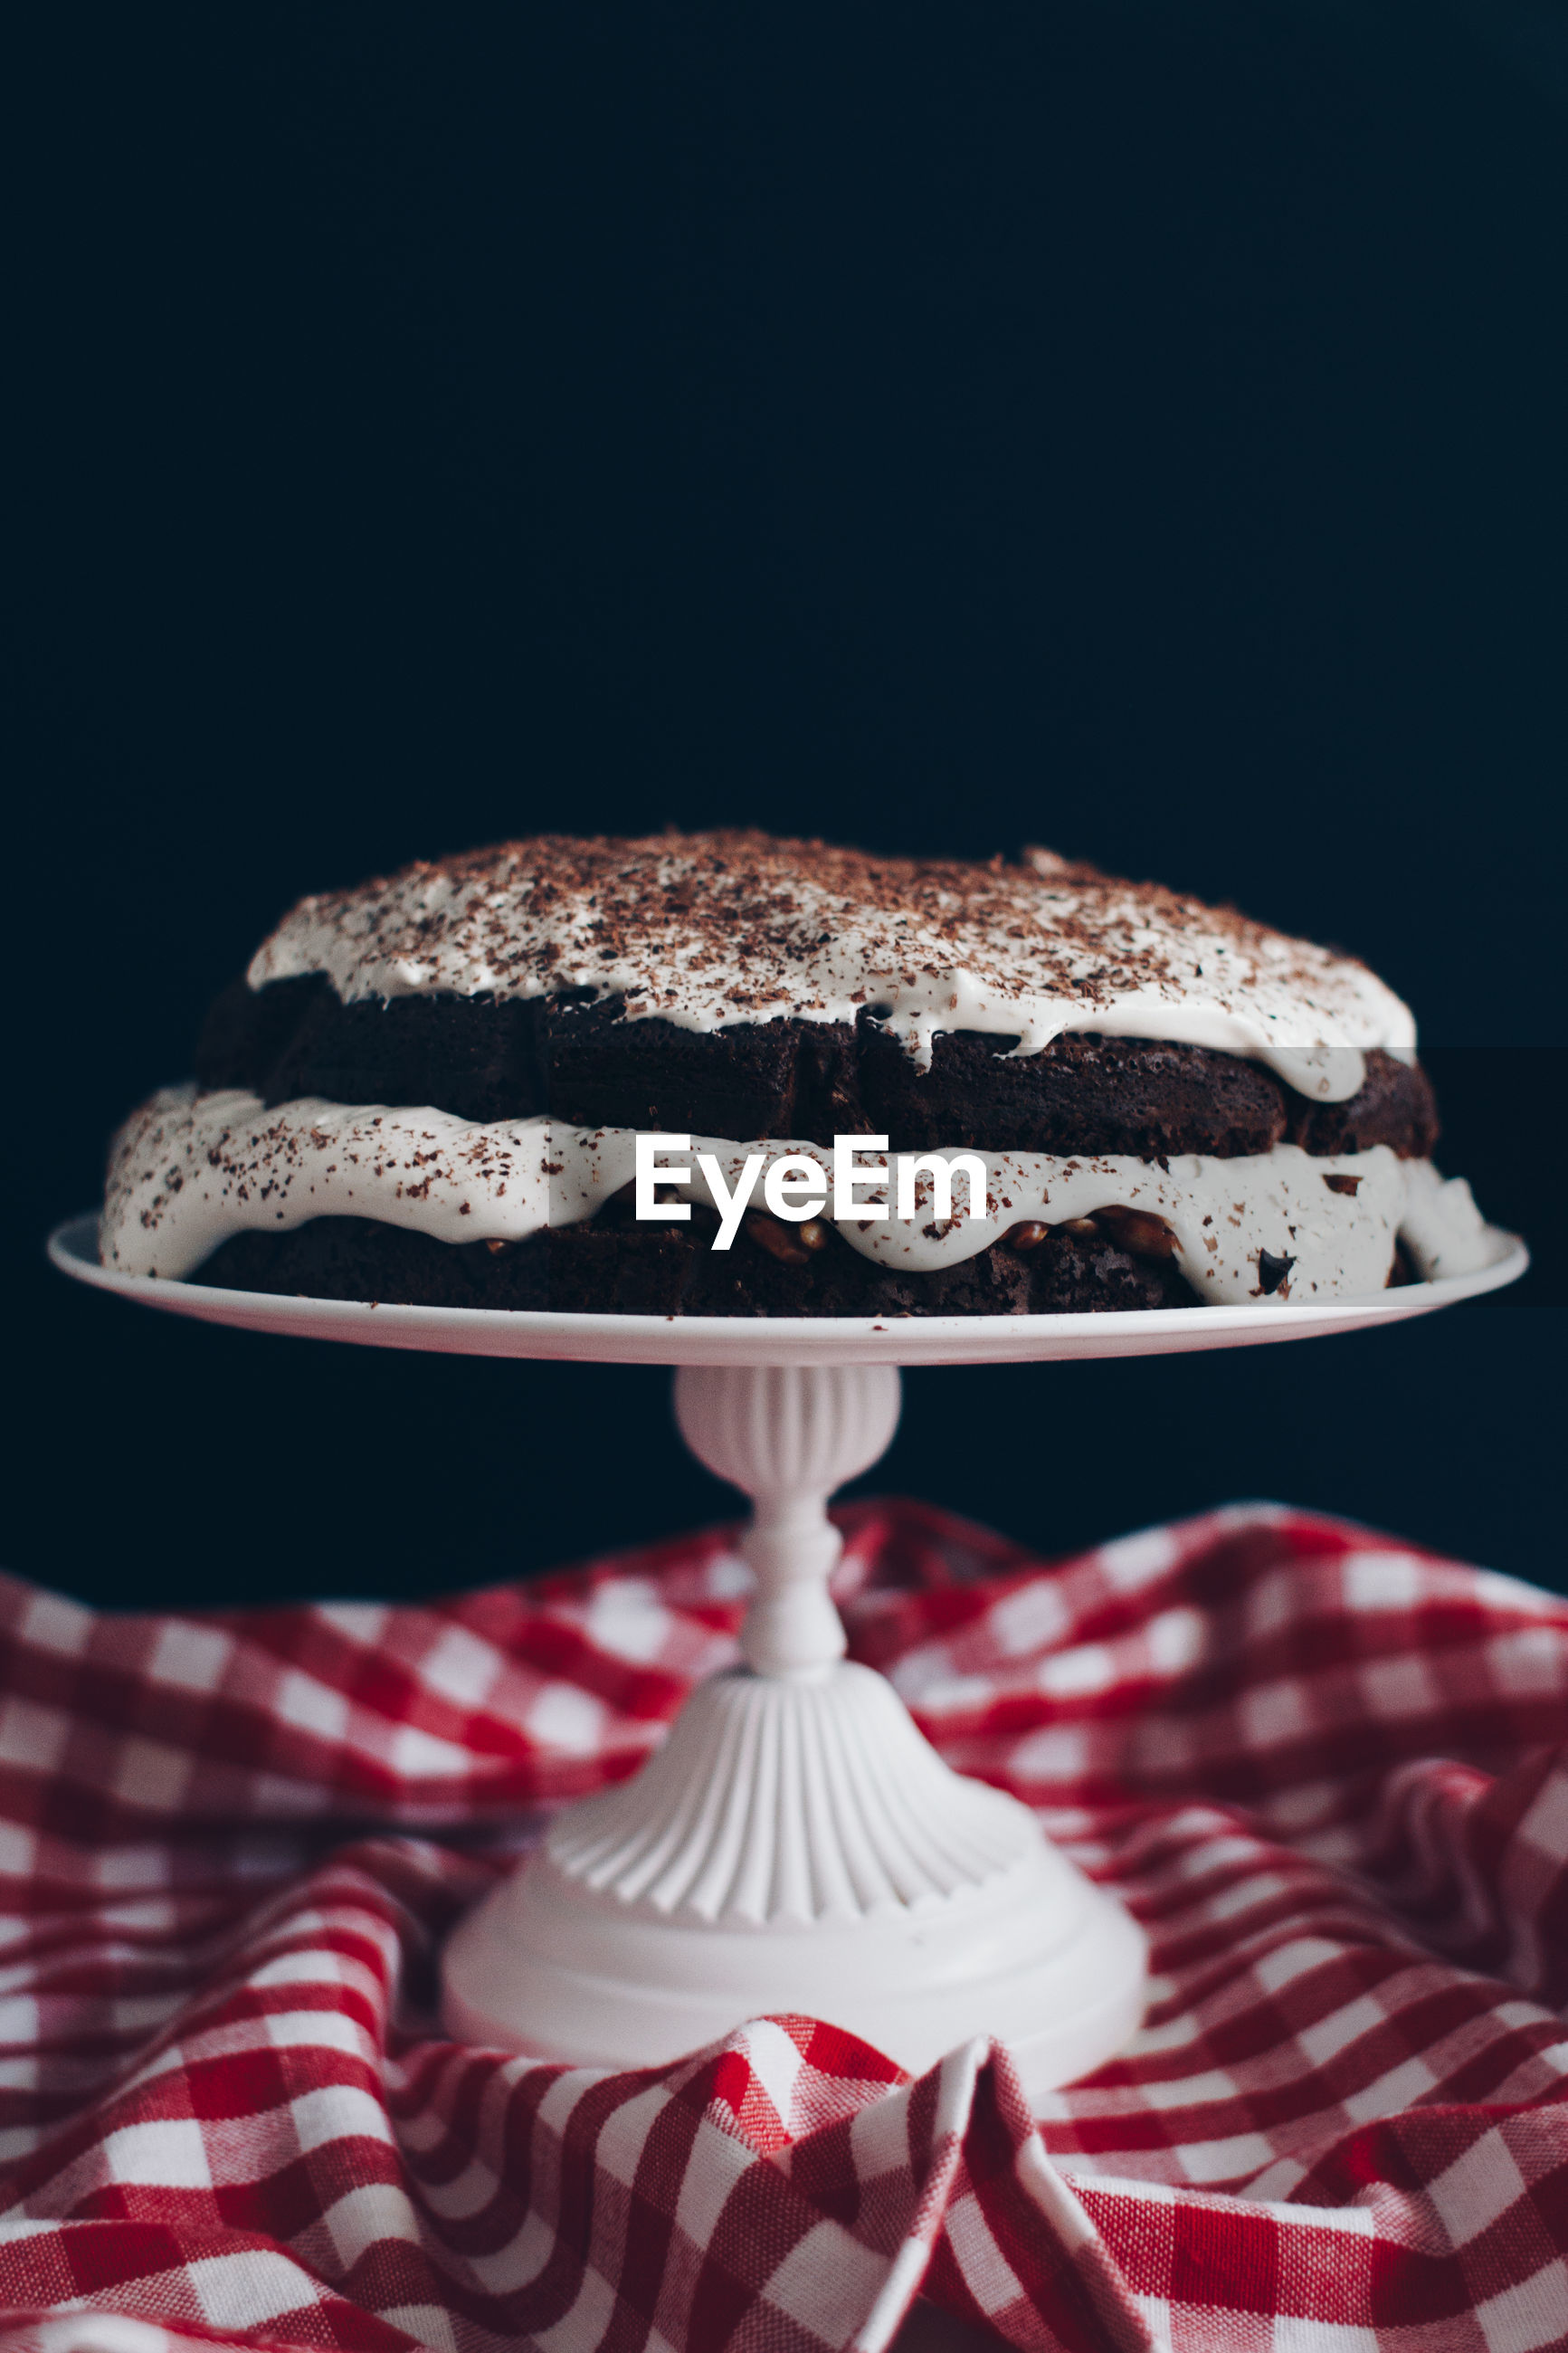 Cake on stand against black background